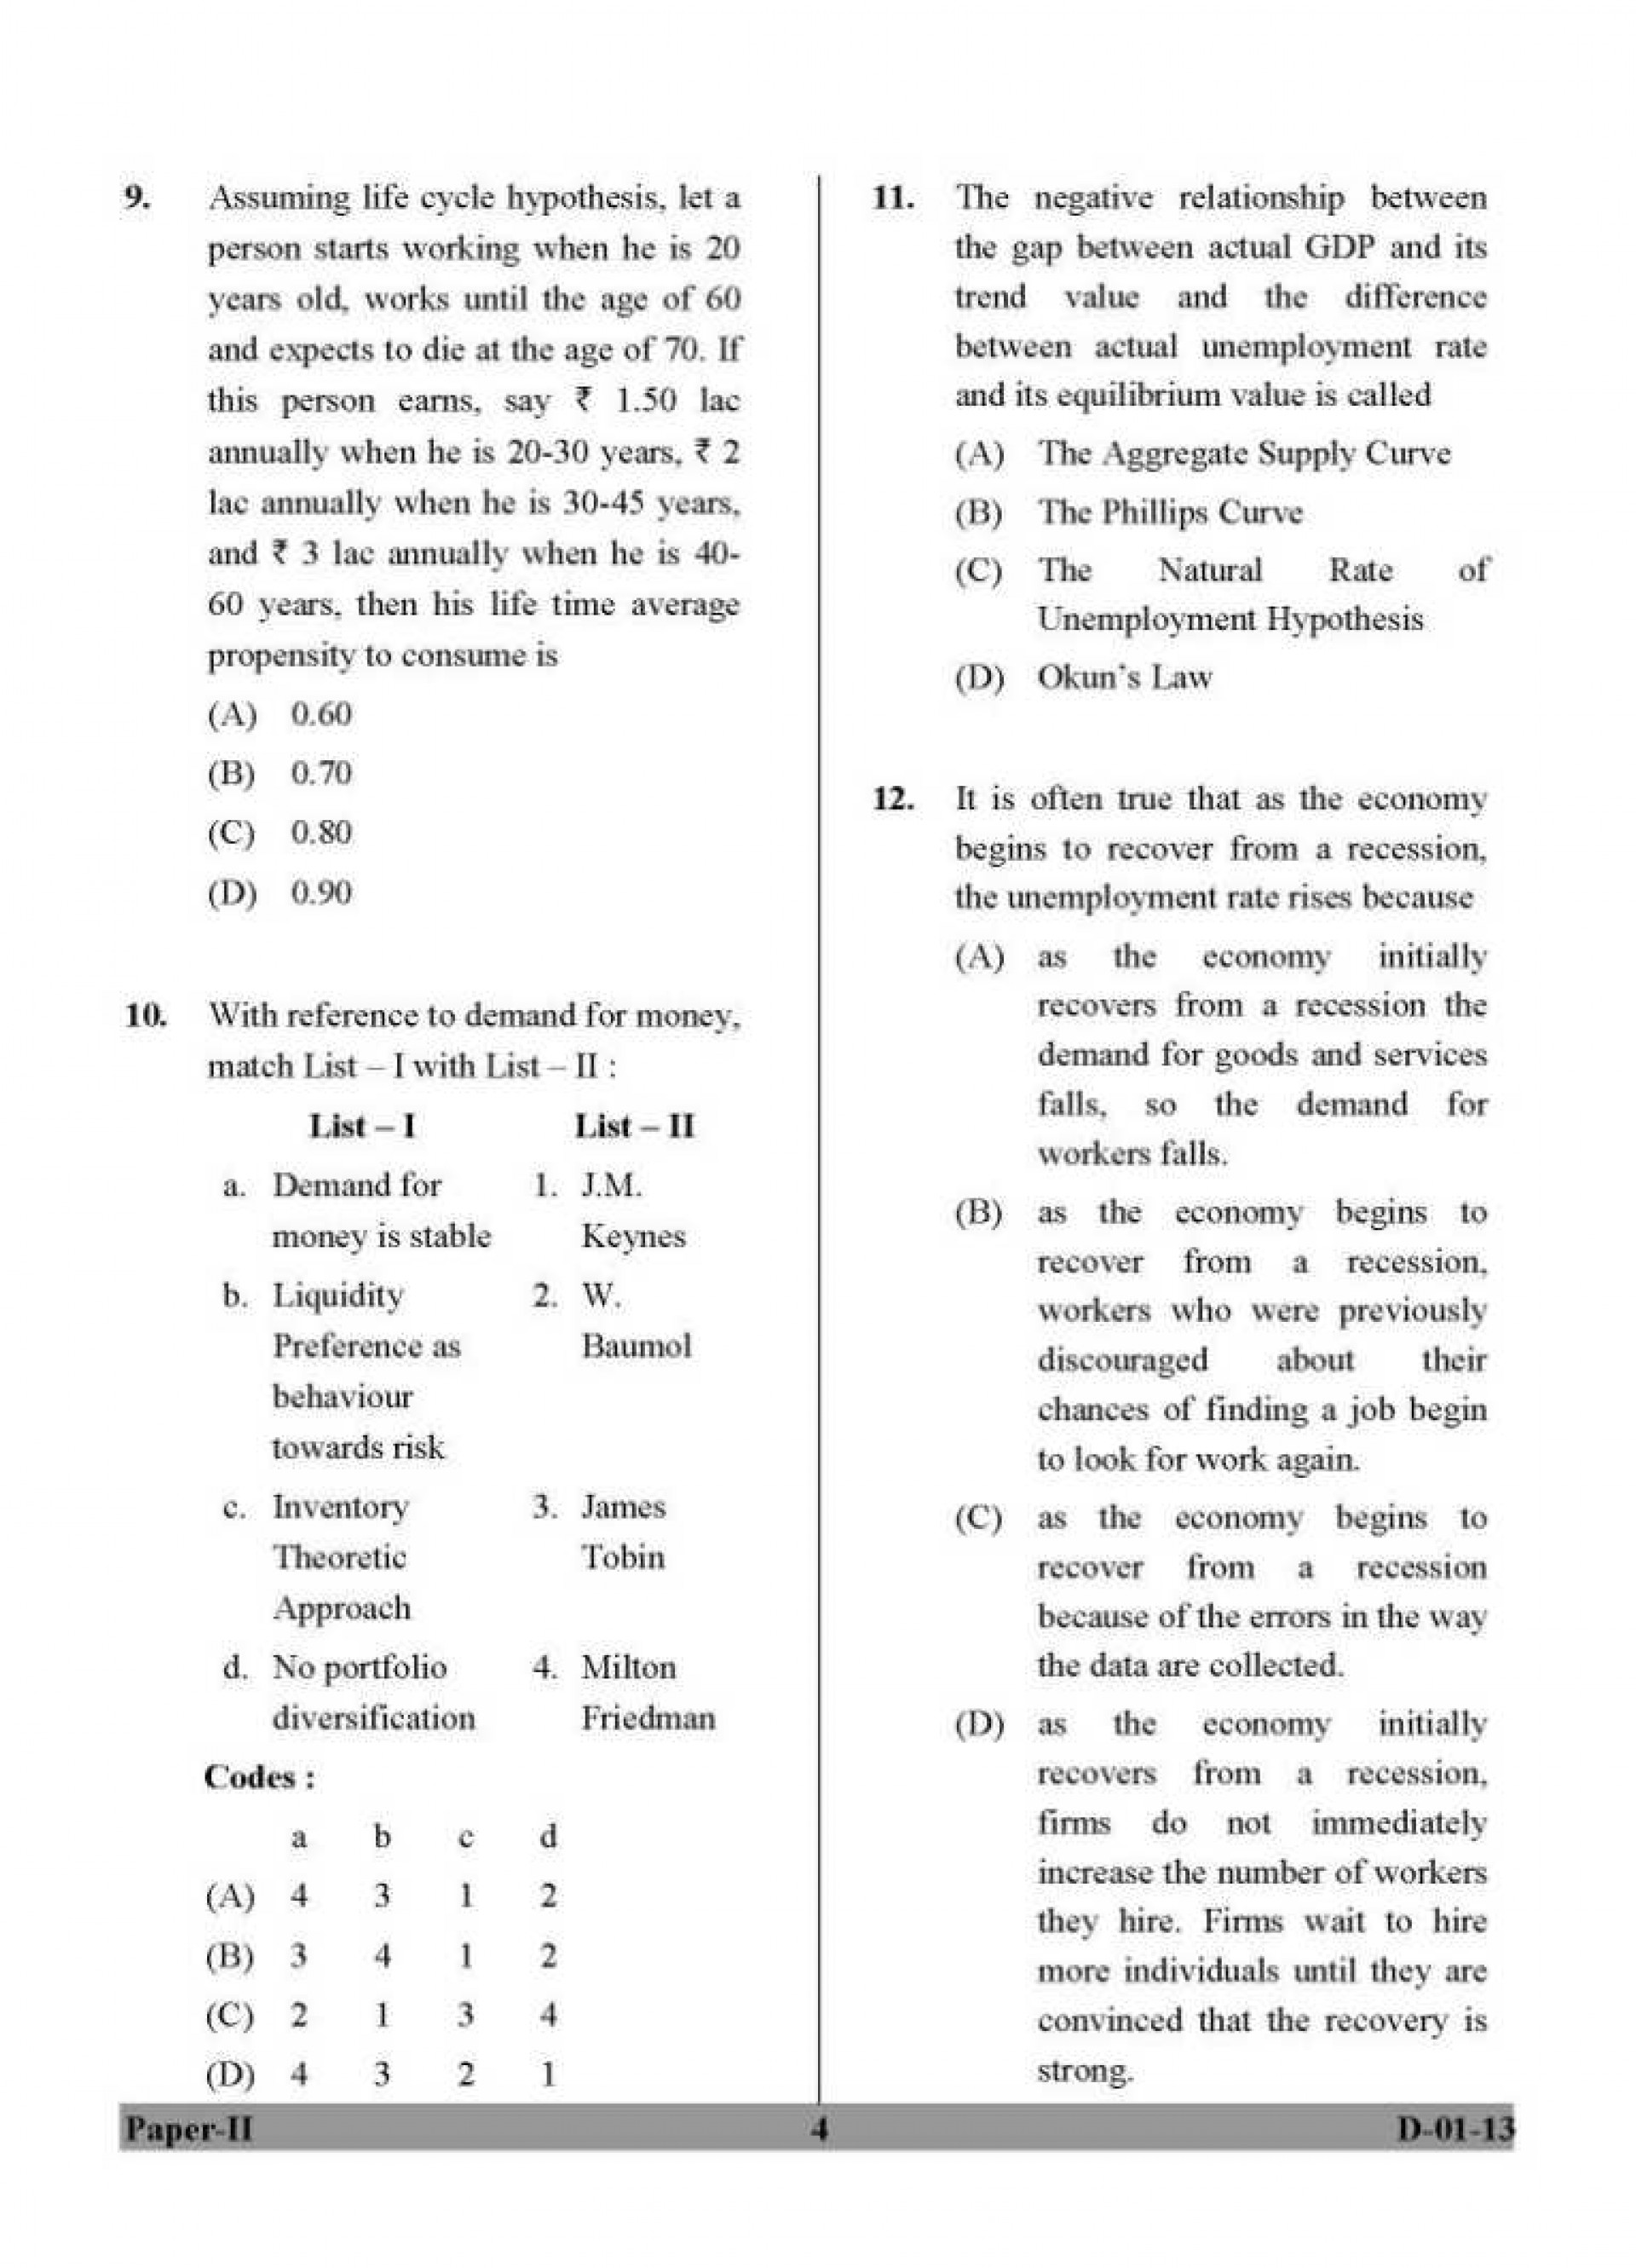 008 Research Paper Model Question Papers Economics Remarkable Topics In Philippines India International 1920